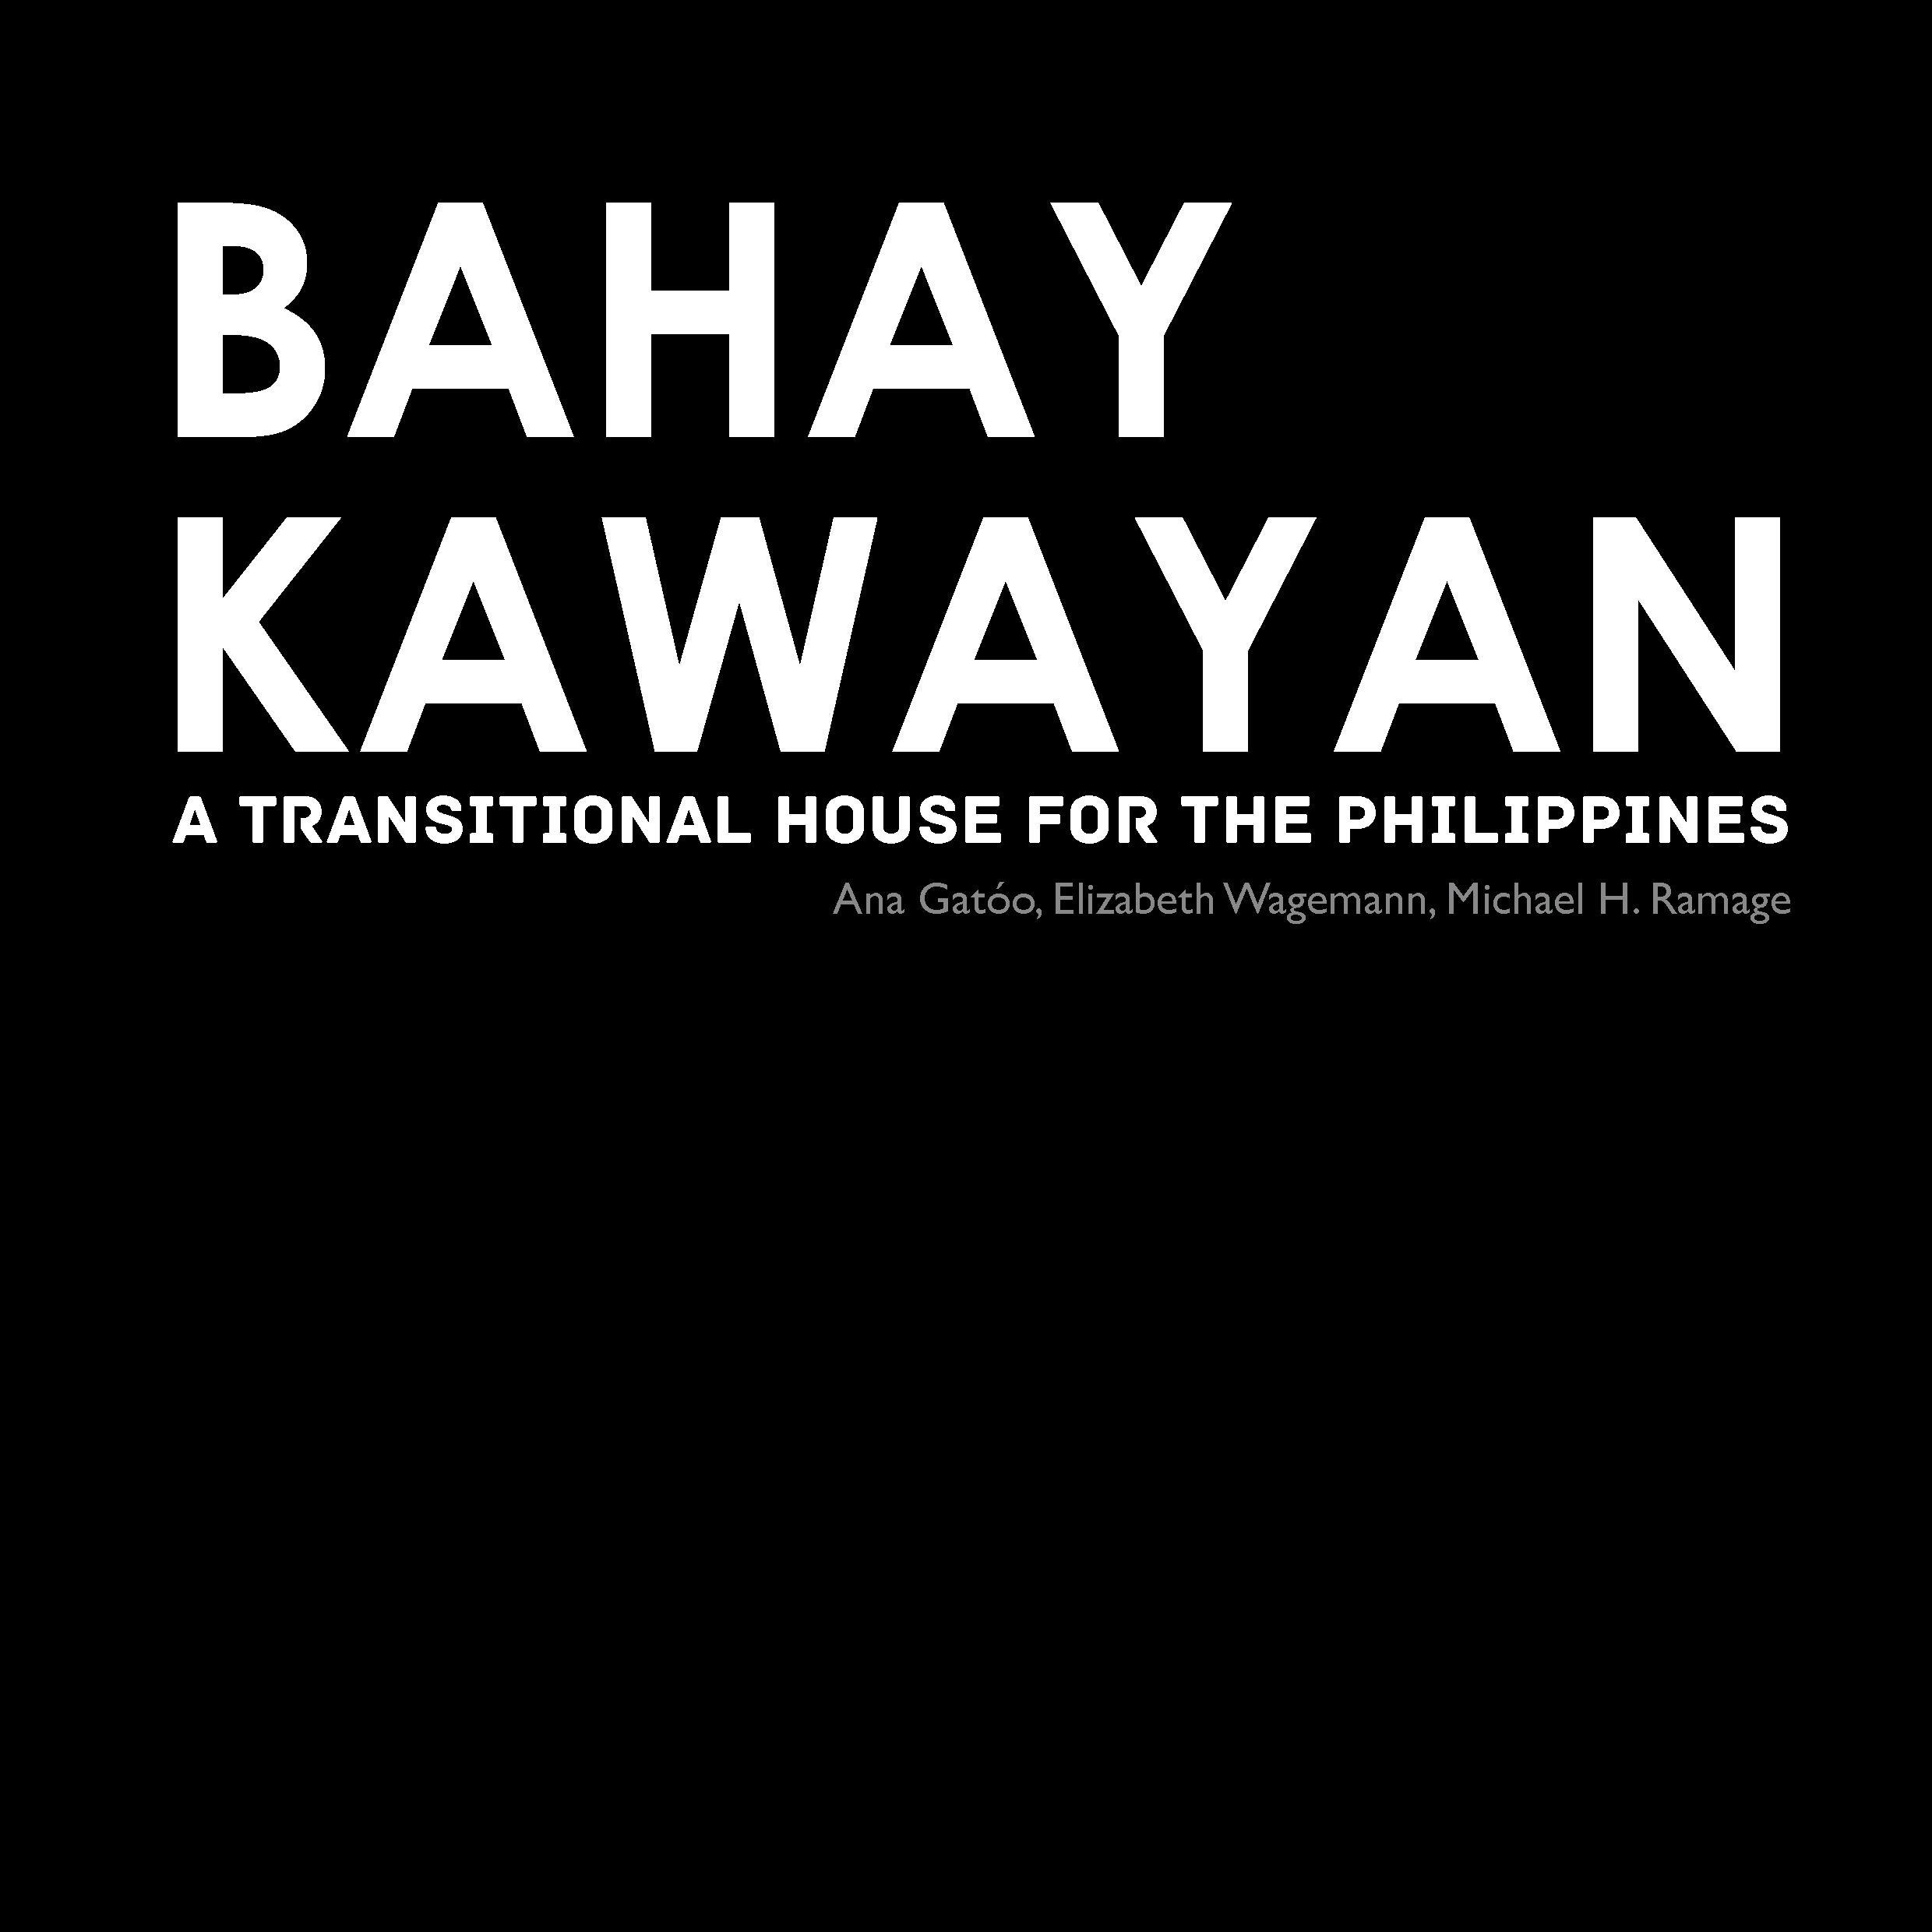 """New publication from The Natural Materials and Structures Group: """"Bahay Kawayan, A Transitional House for the Philippines"""""""